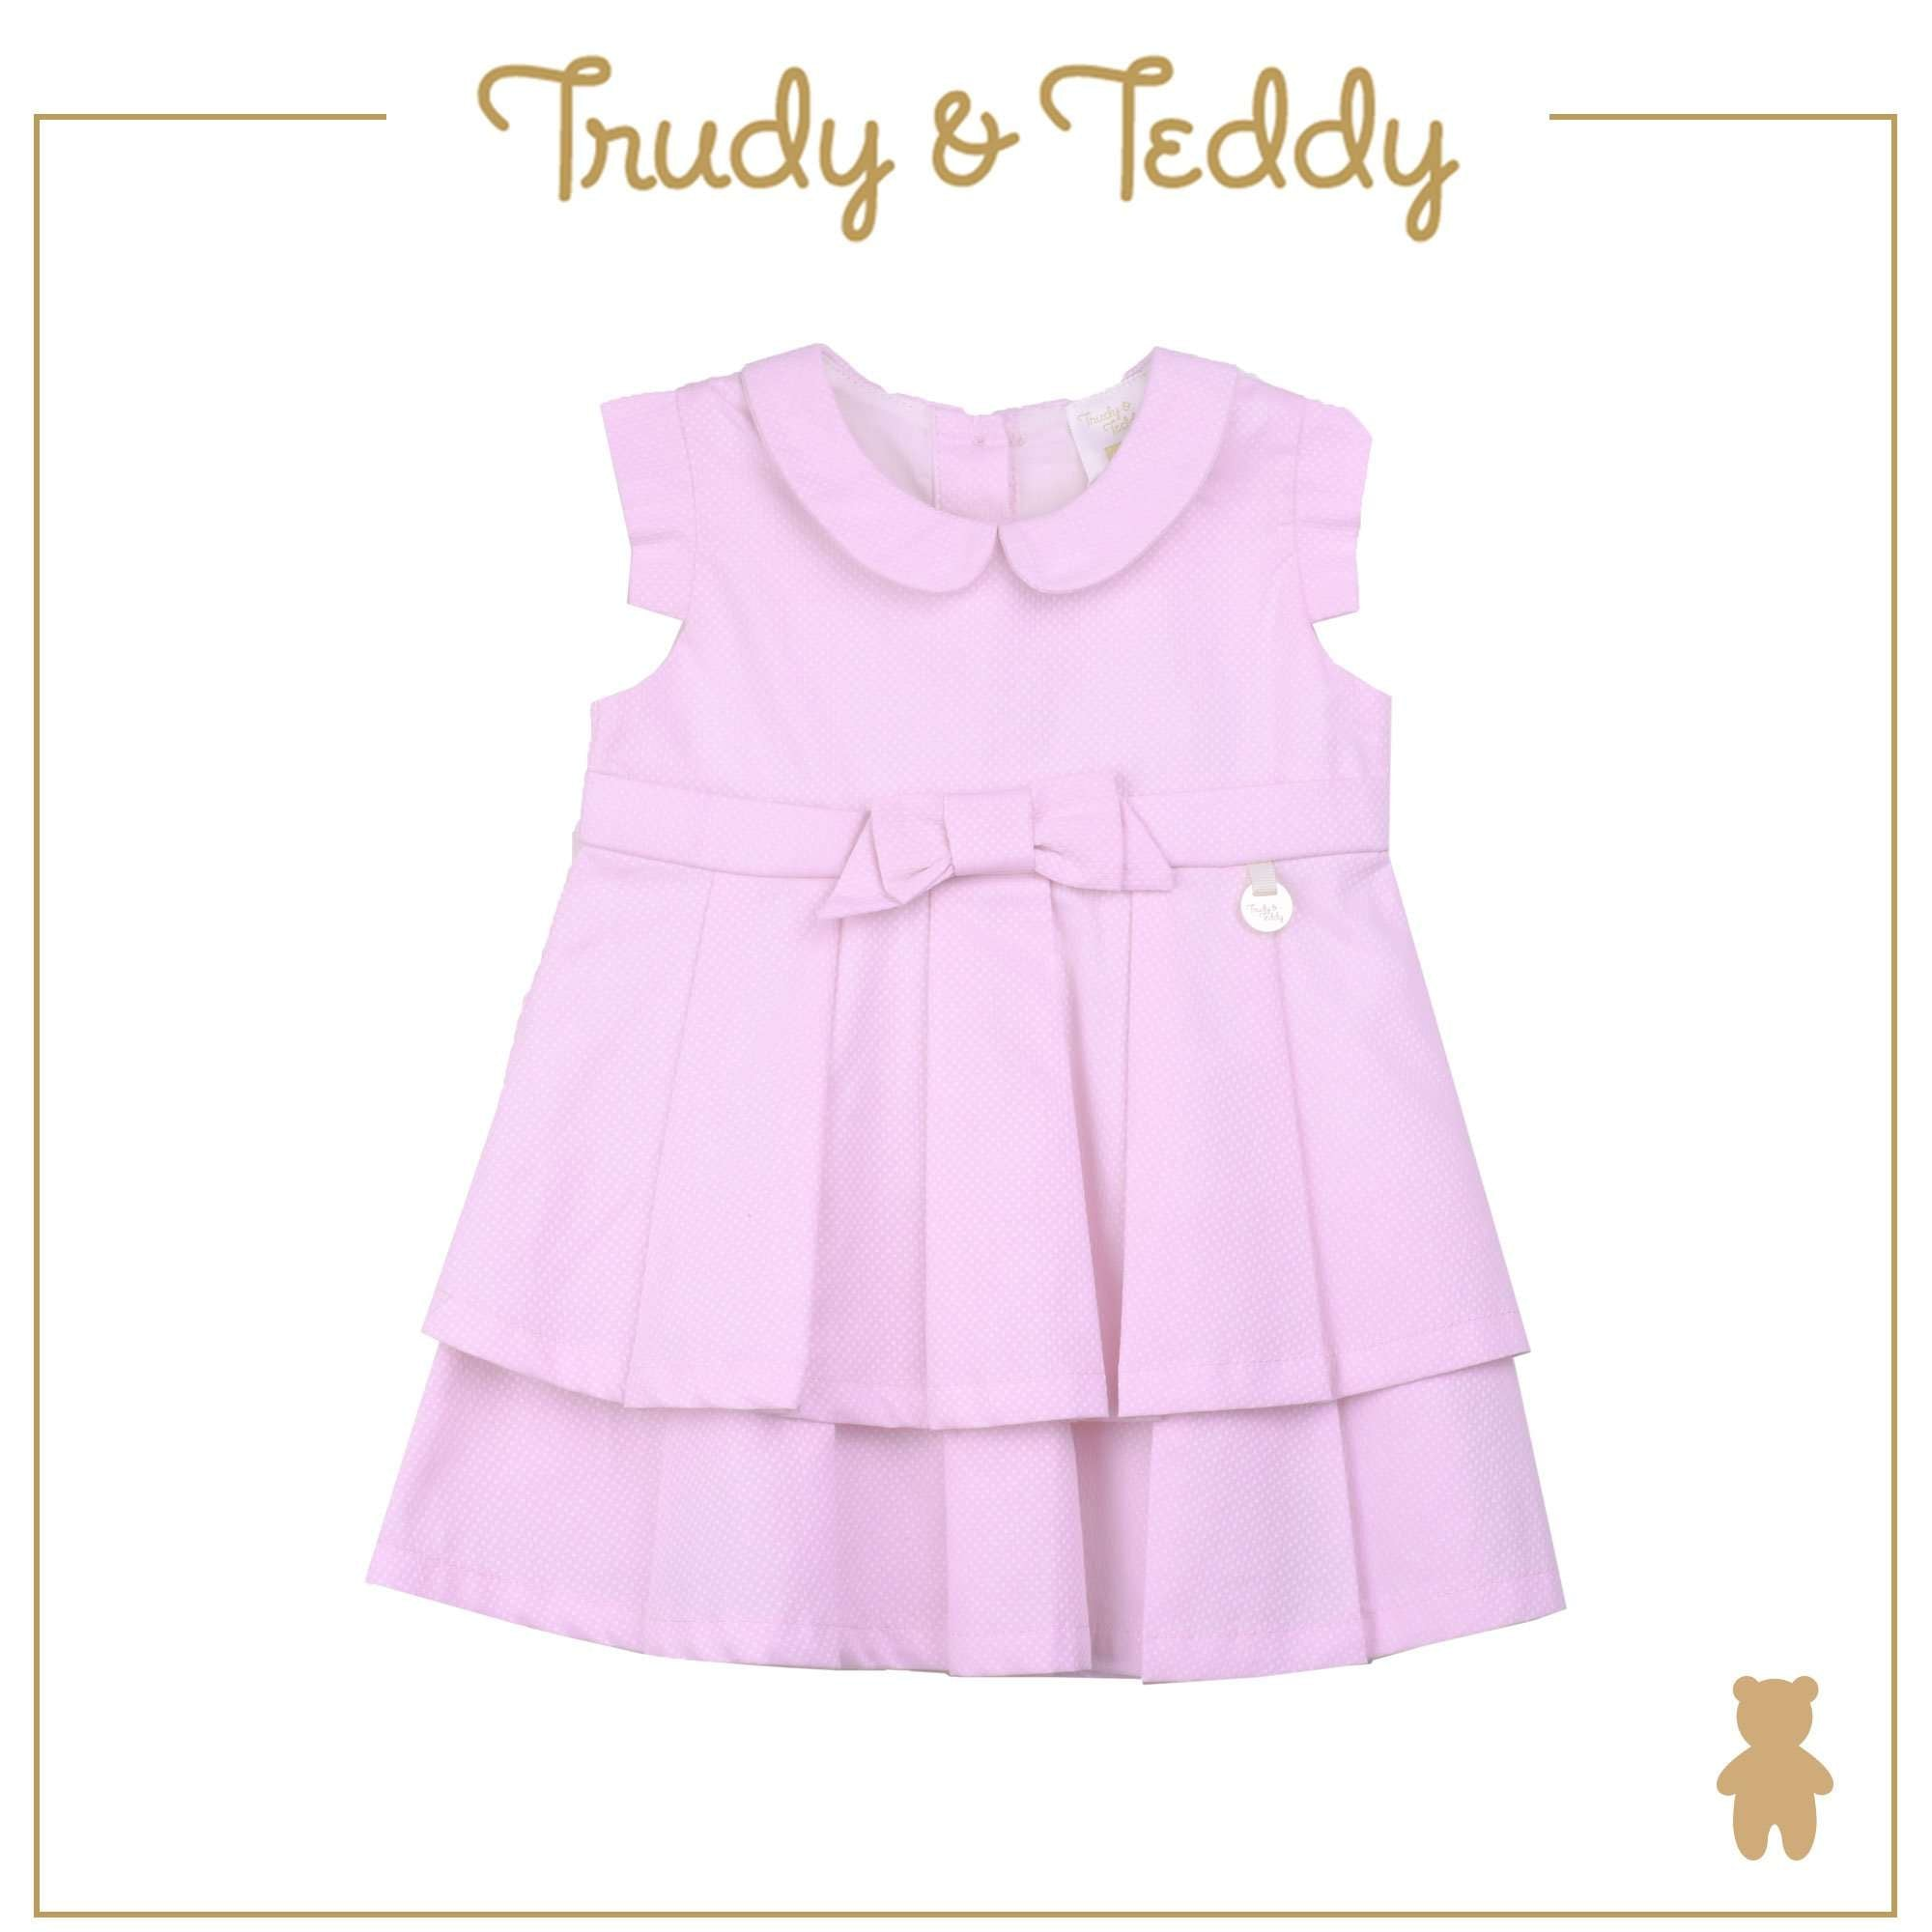 Trudy & Teddy Baby Girl Short Sleeve Dress T924002-3141-P1 : Buy Trudy & Teddy online at CMG.MY